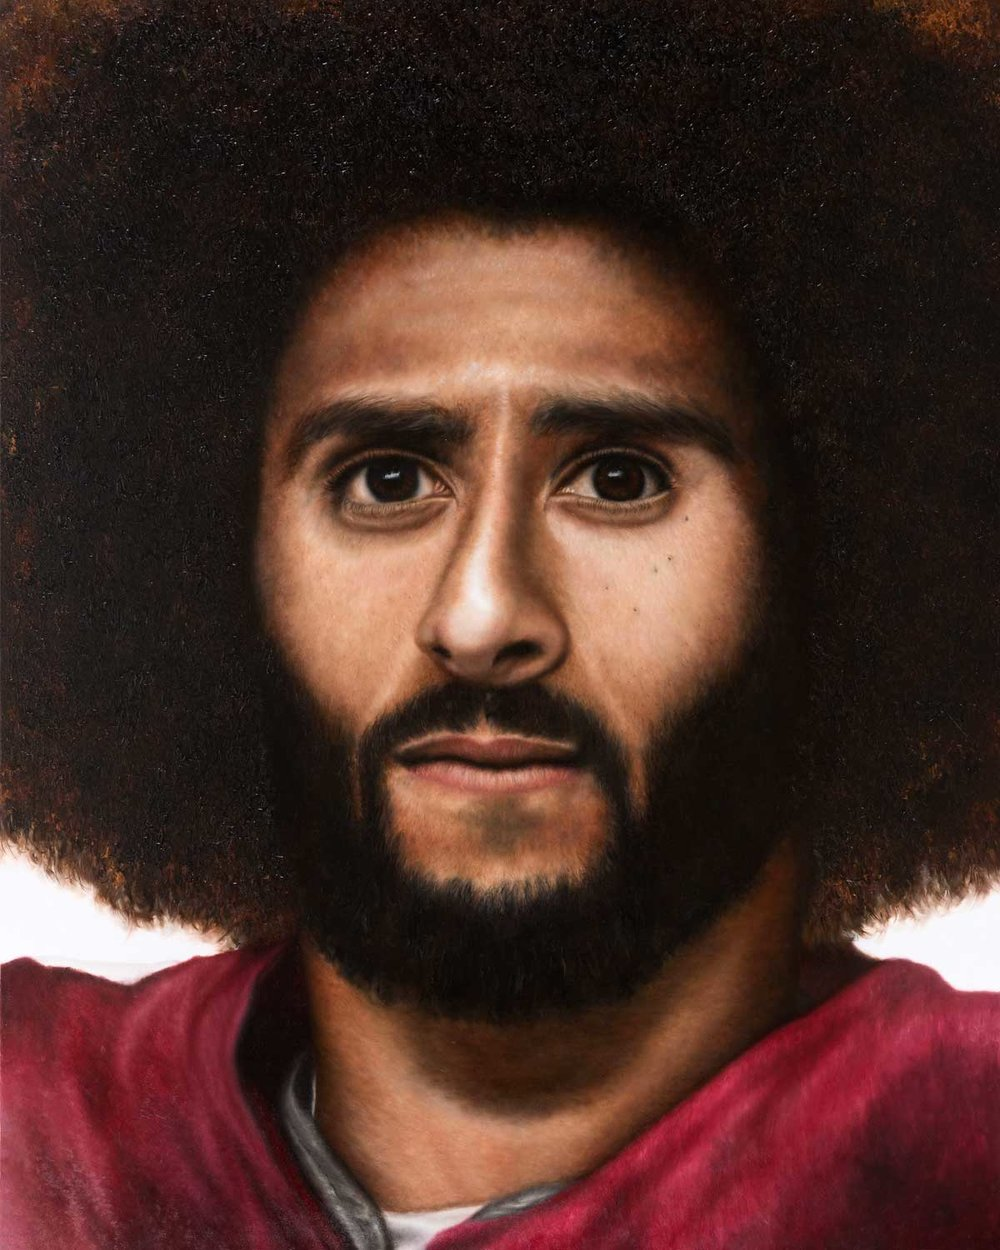 O'Neil_Scott_Kaep_Oil_On_Canvas_48X60_2018-72dpi.jpg